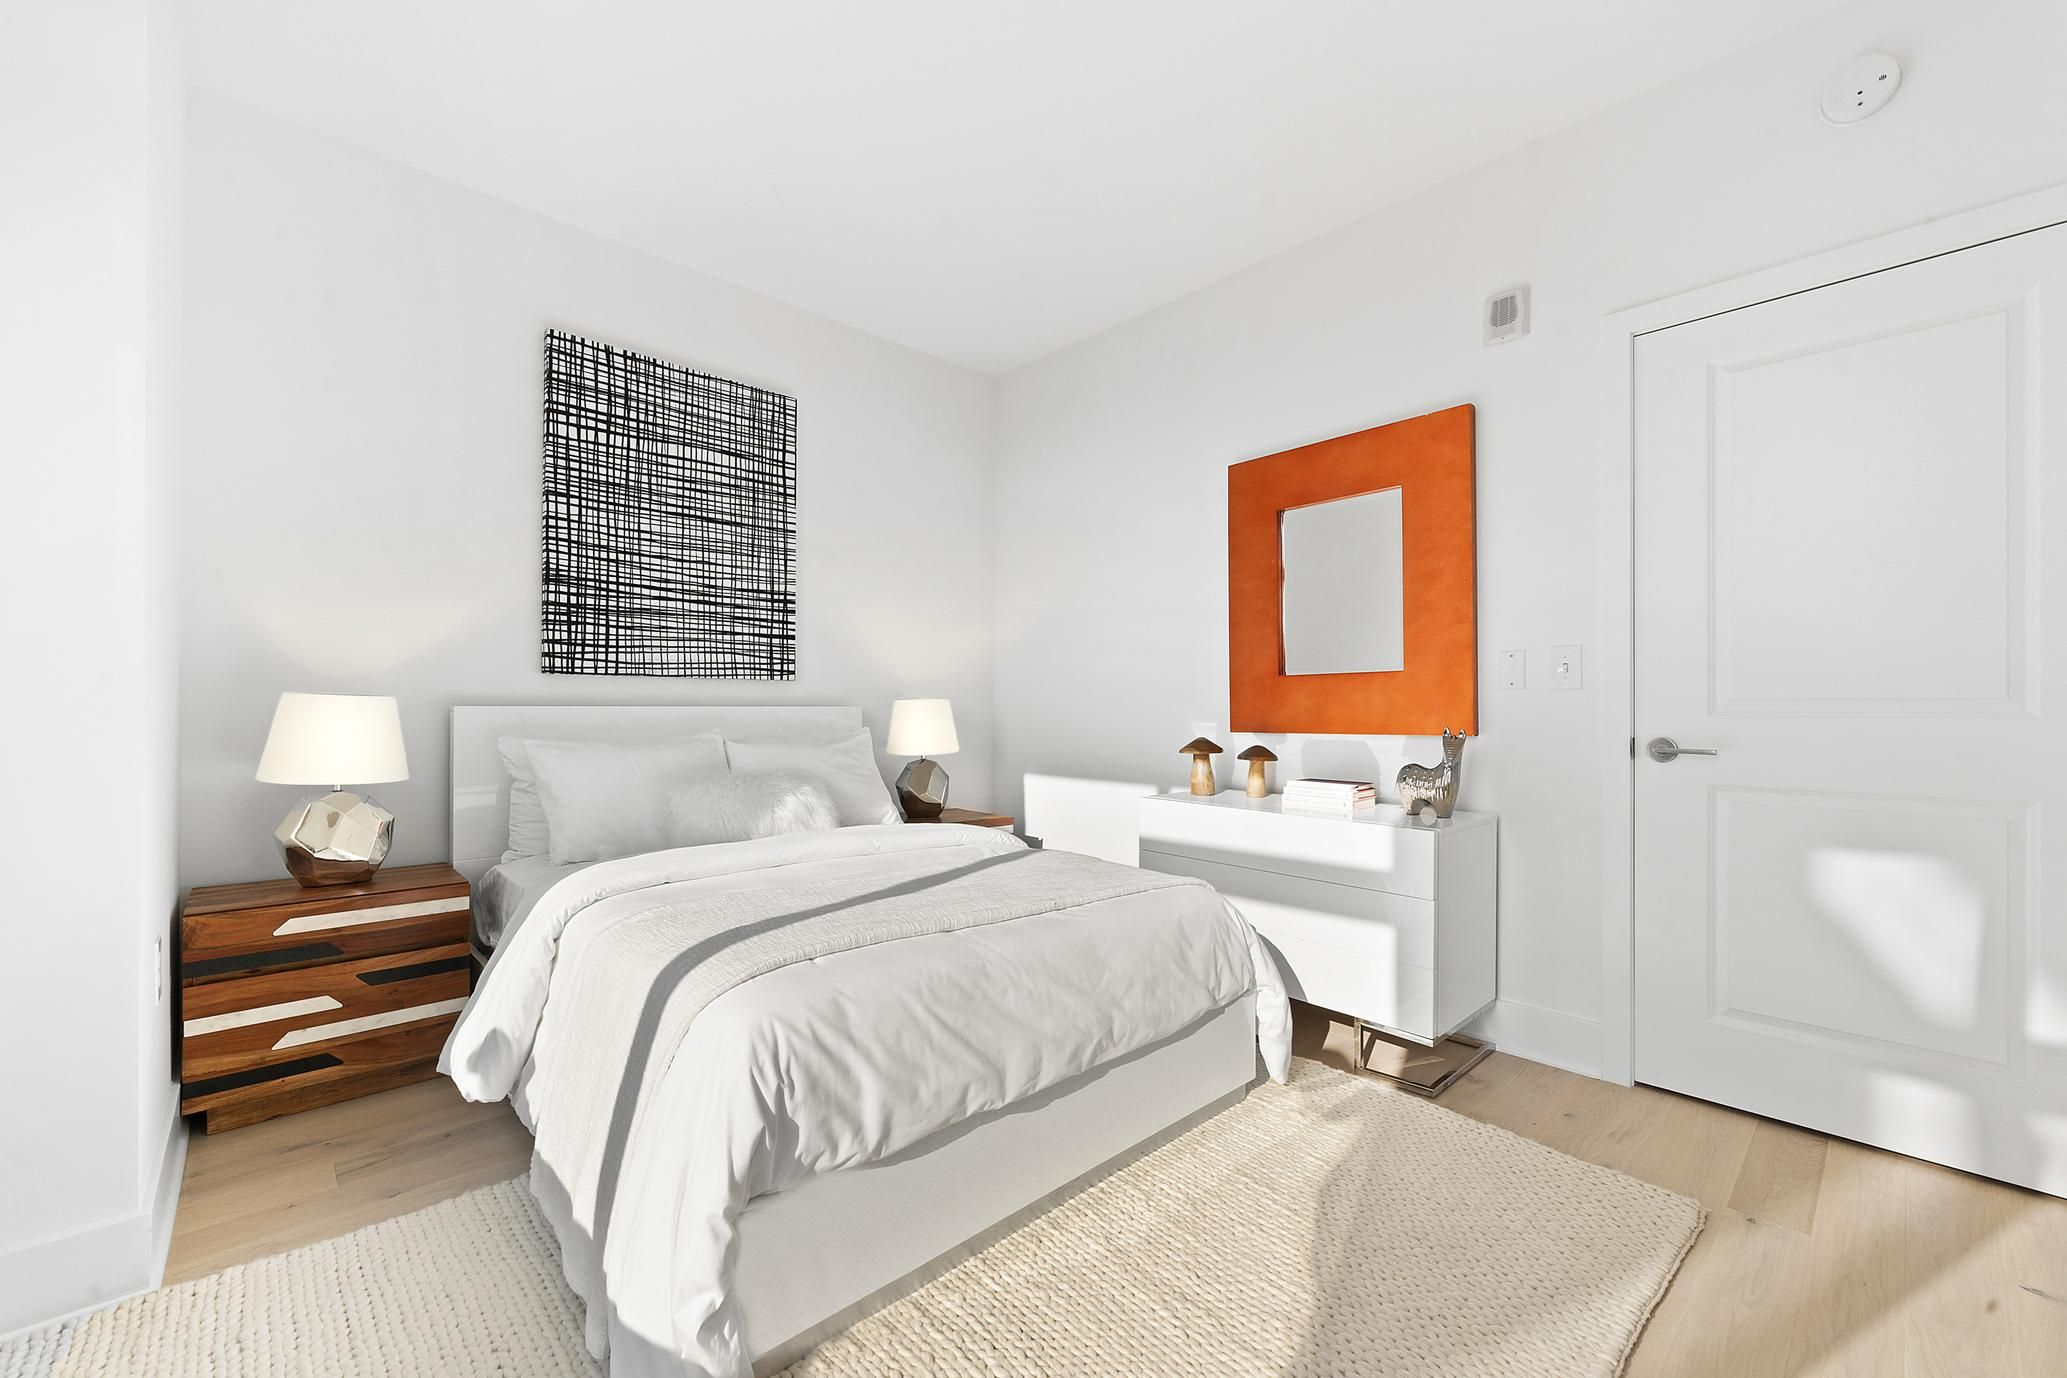 Wake to natural light in a modern bedroom fit for any city